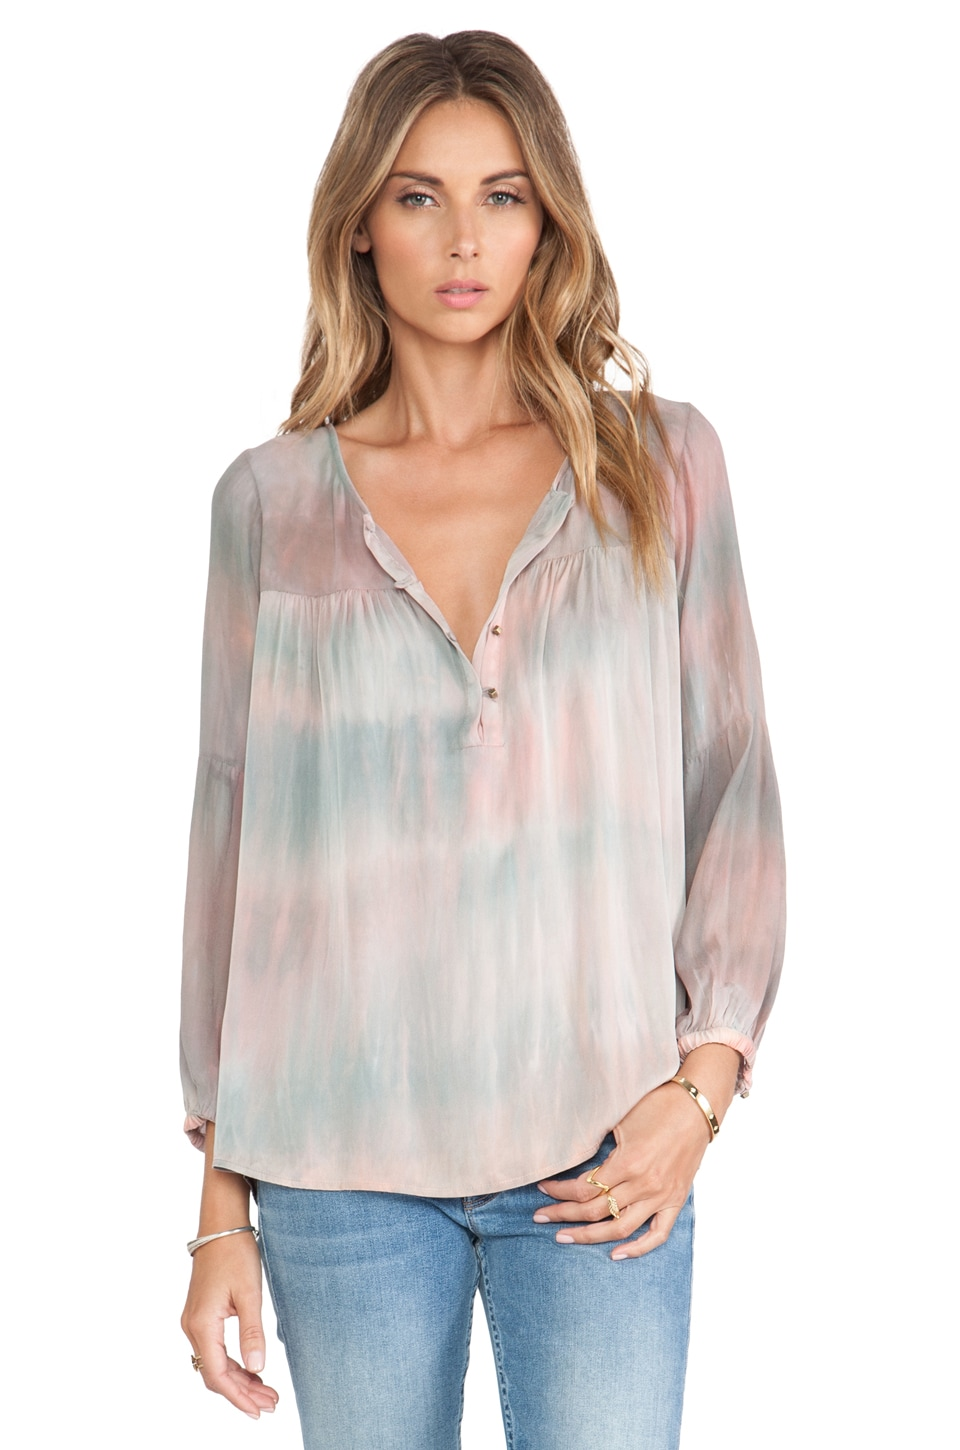 Gypsy 05 Pique-Assiette Peasant Blouse in Fog